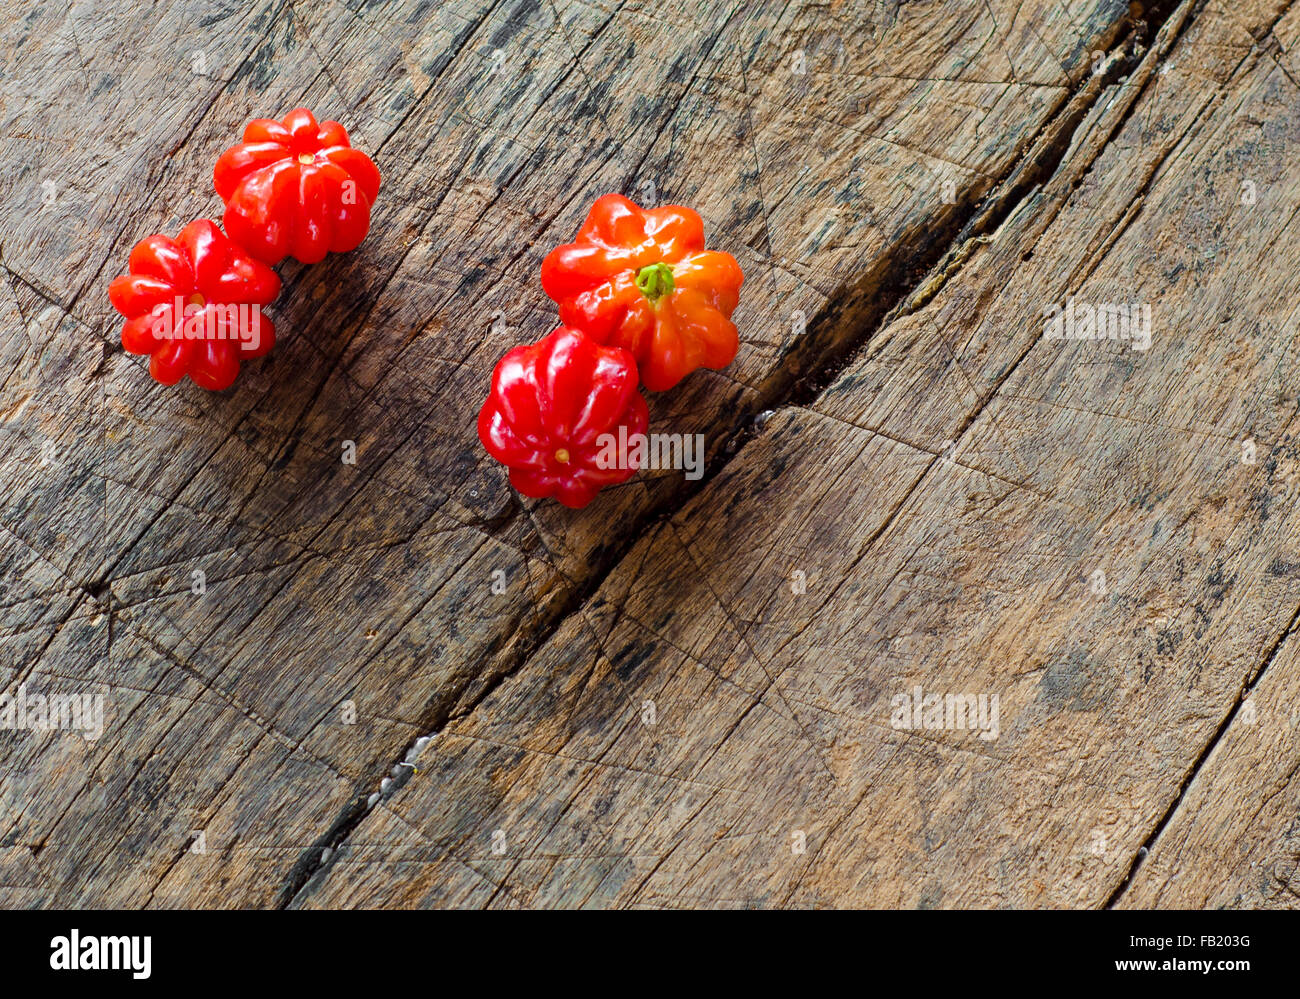 Tropical fruit called Pitanga, Brazilian cherry,Suriname cherry,Cayenne cherry.Shallow depth of field. - Stock Image